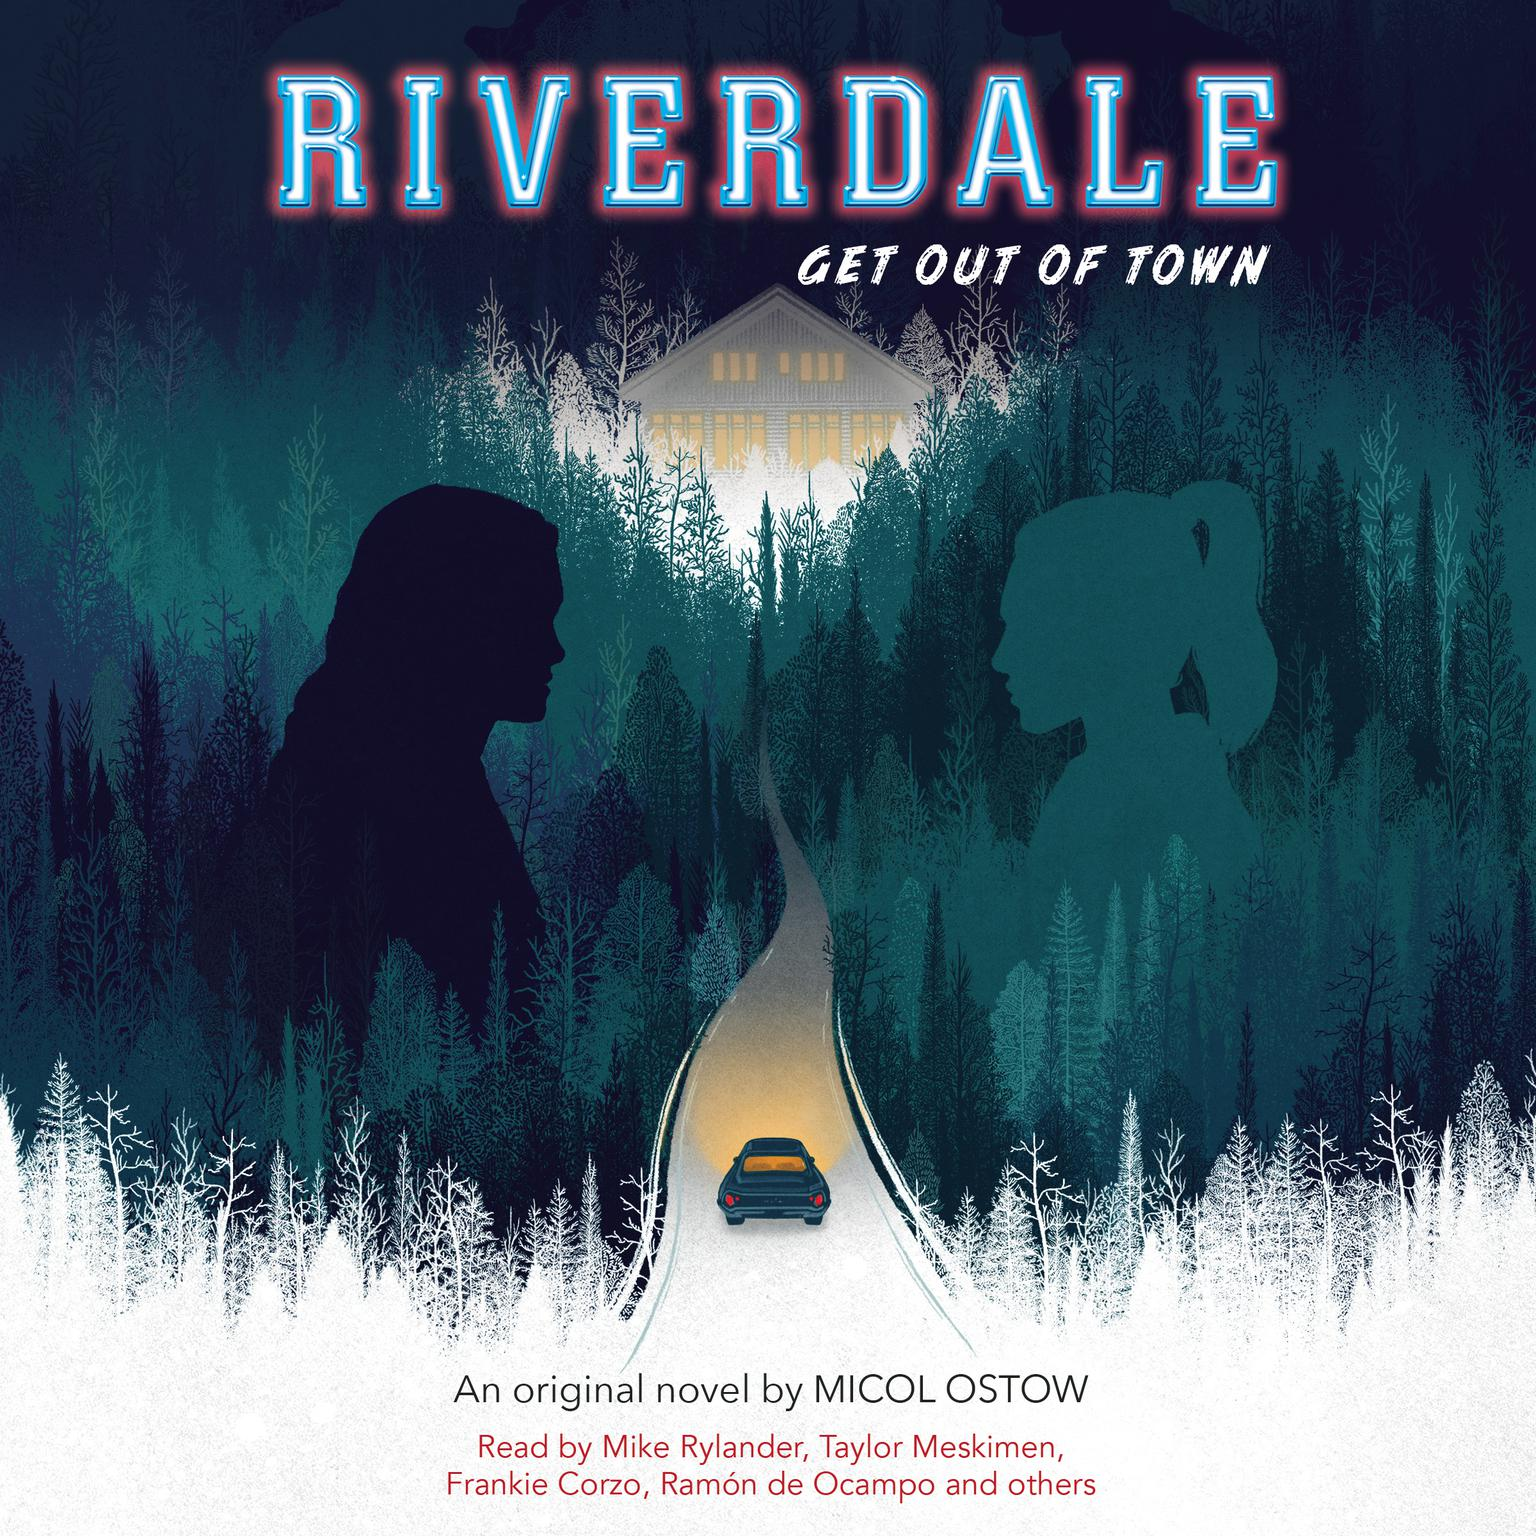 Get out of Town (Riverdale, Novel #2) (Digital Audio Download Edition) Audiobook, by Micol Ostow